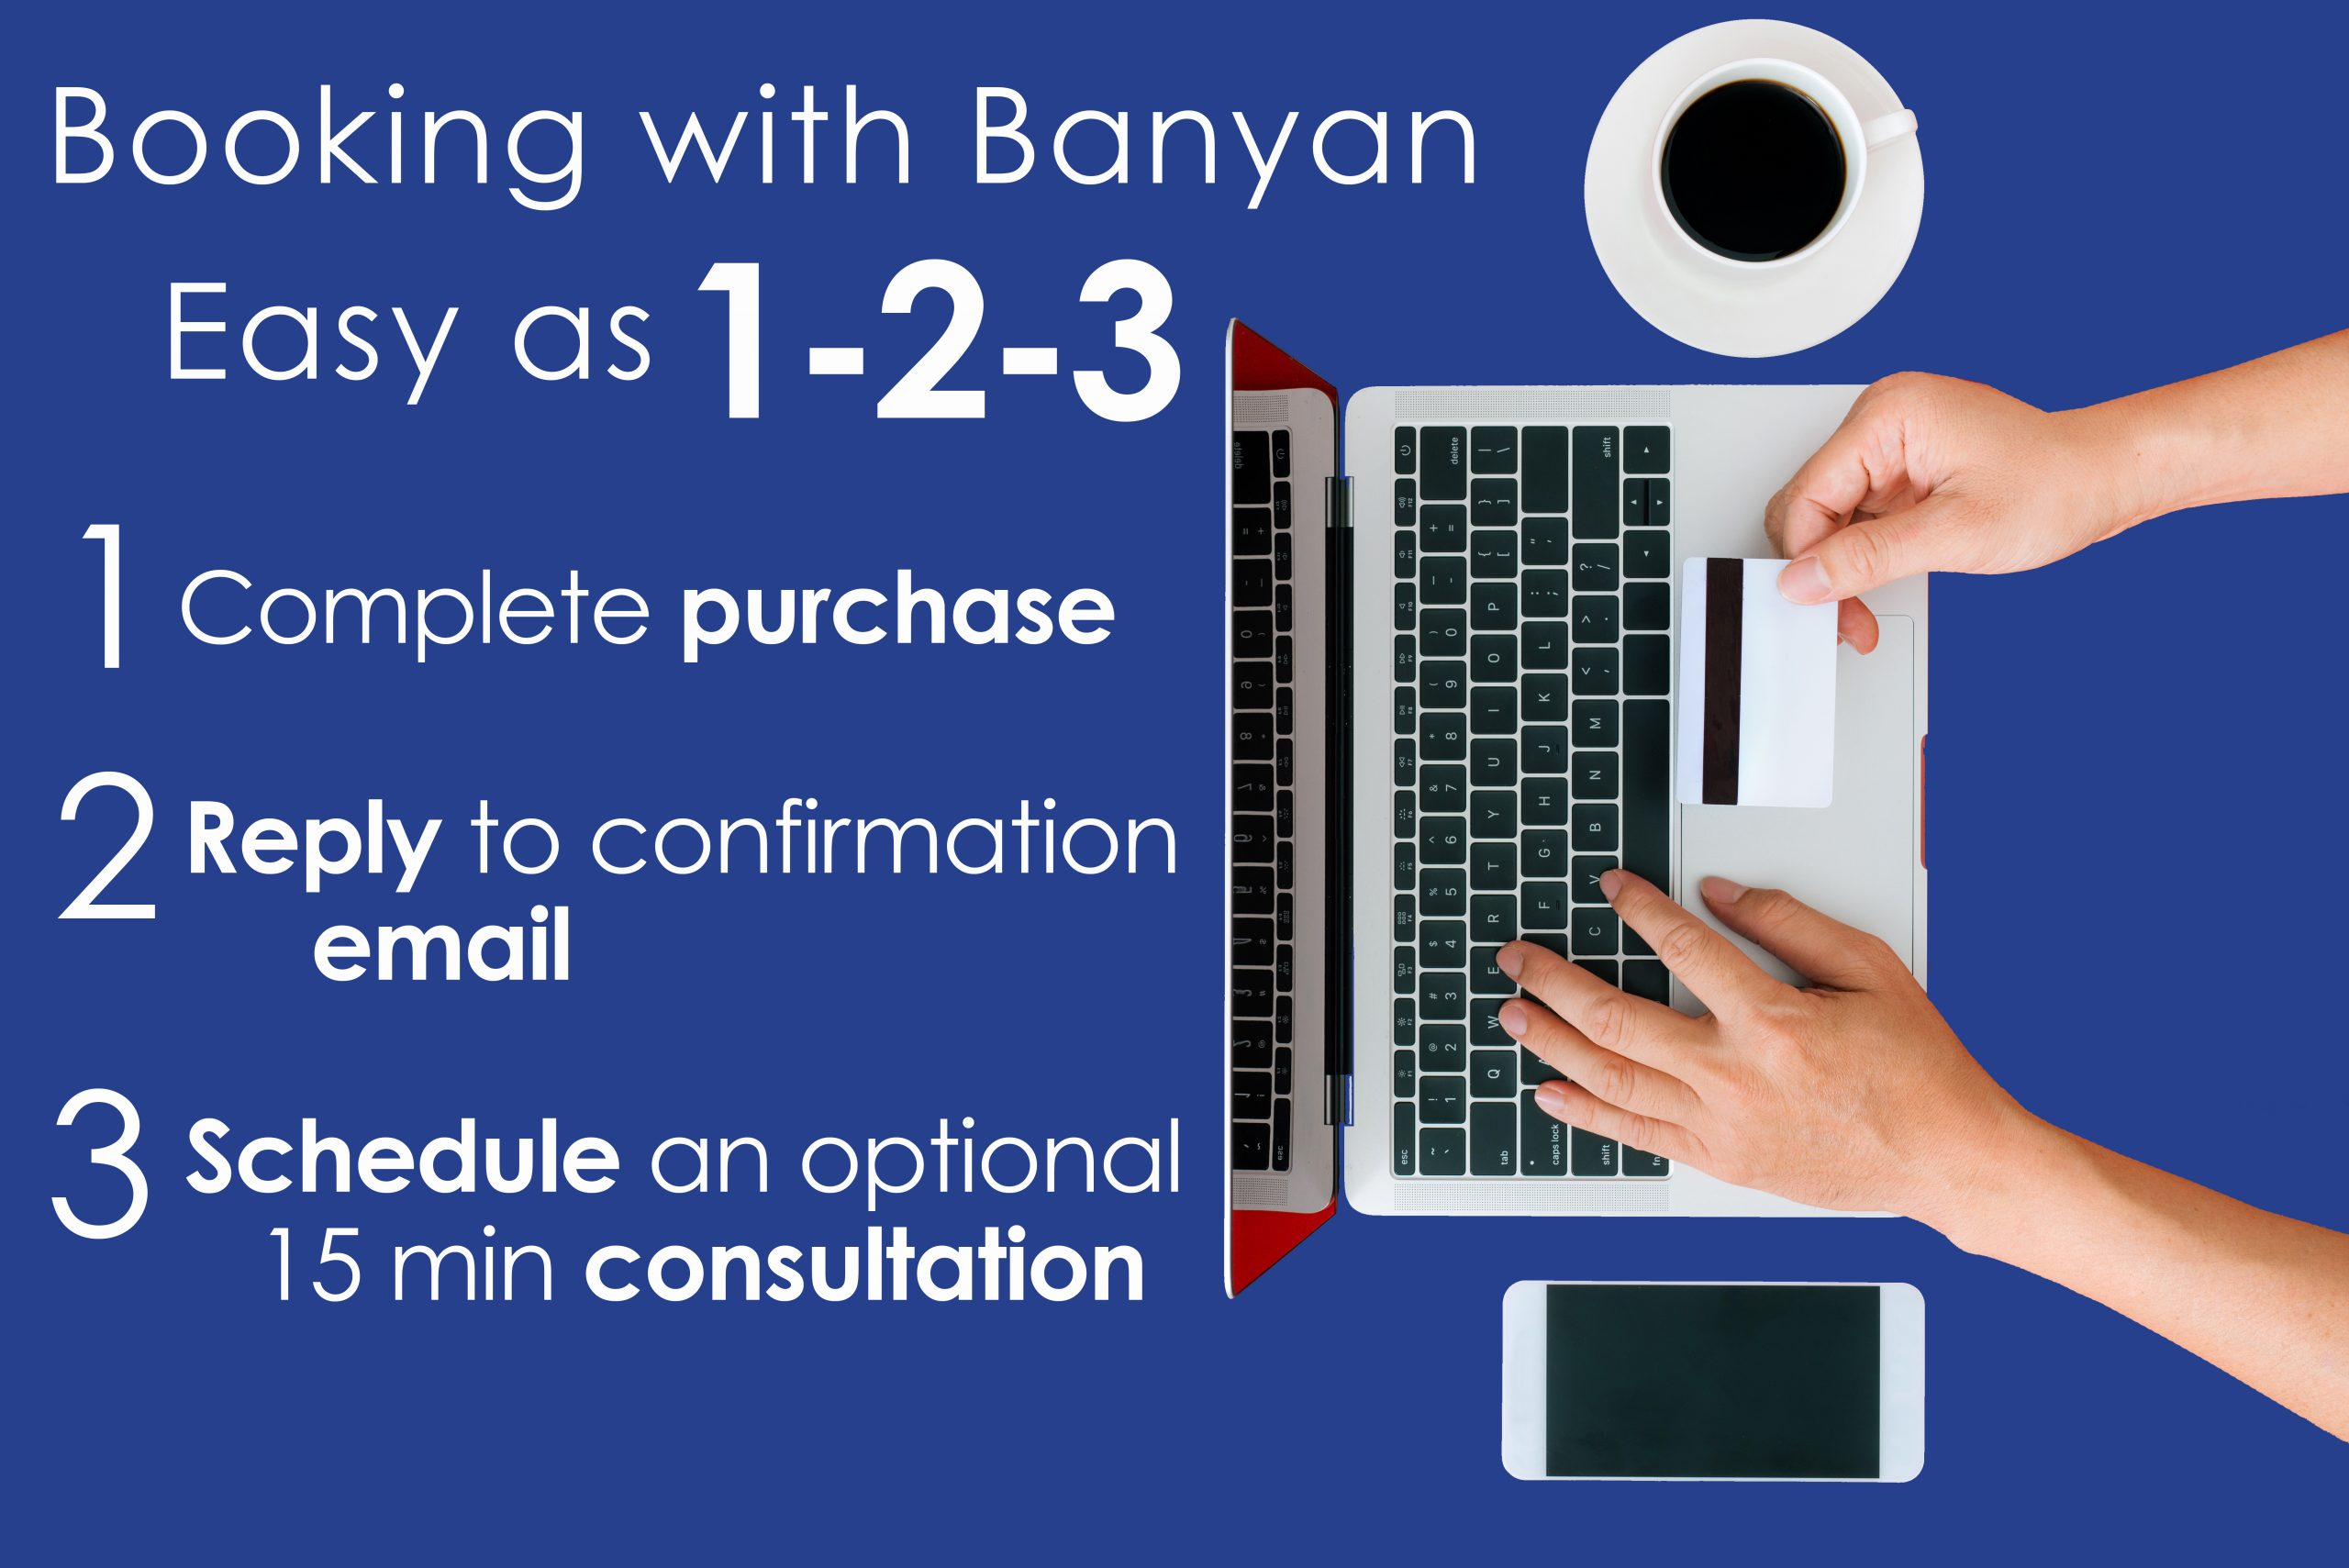 Booking with Banyan